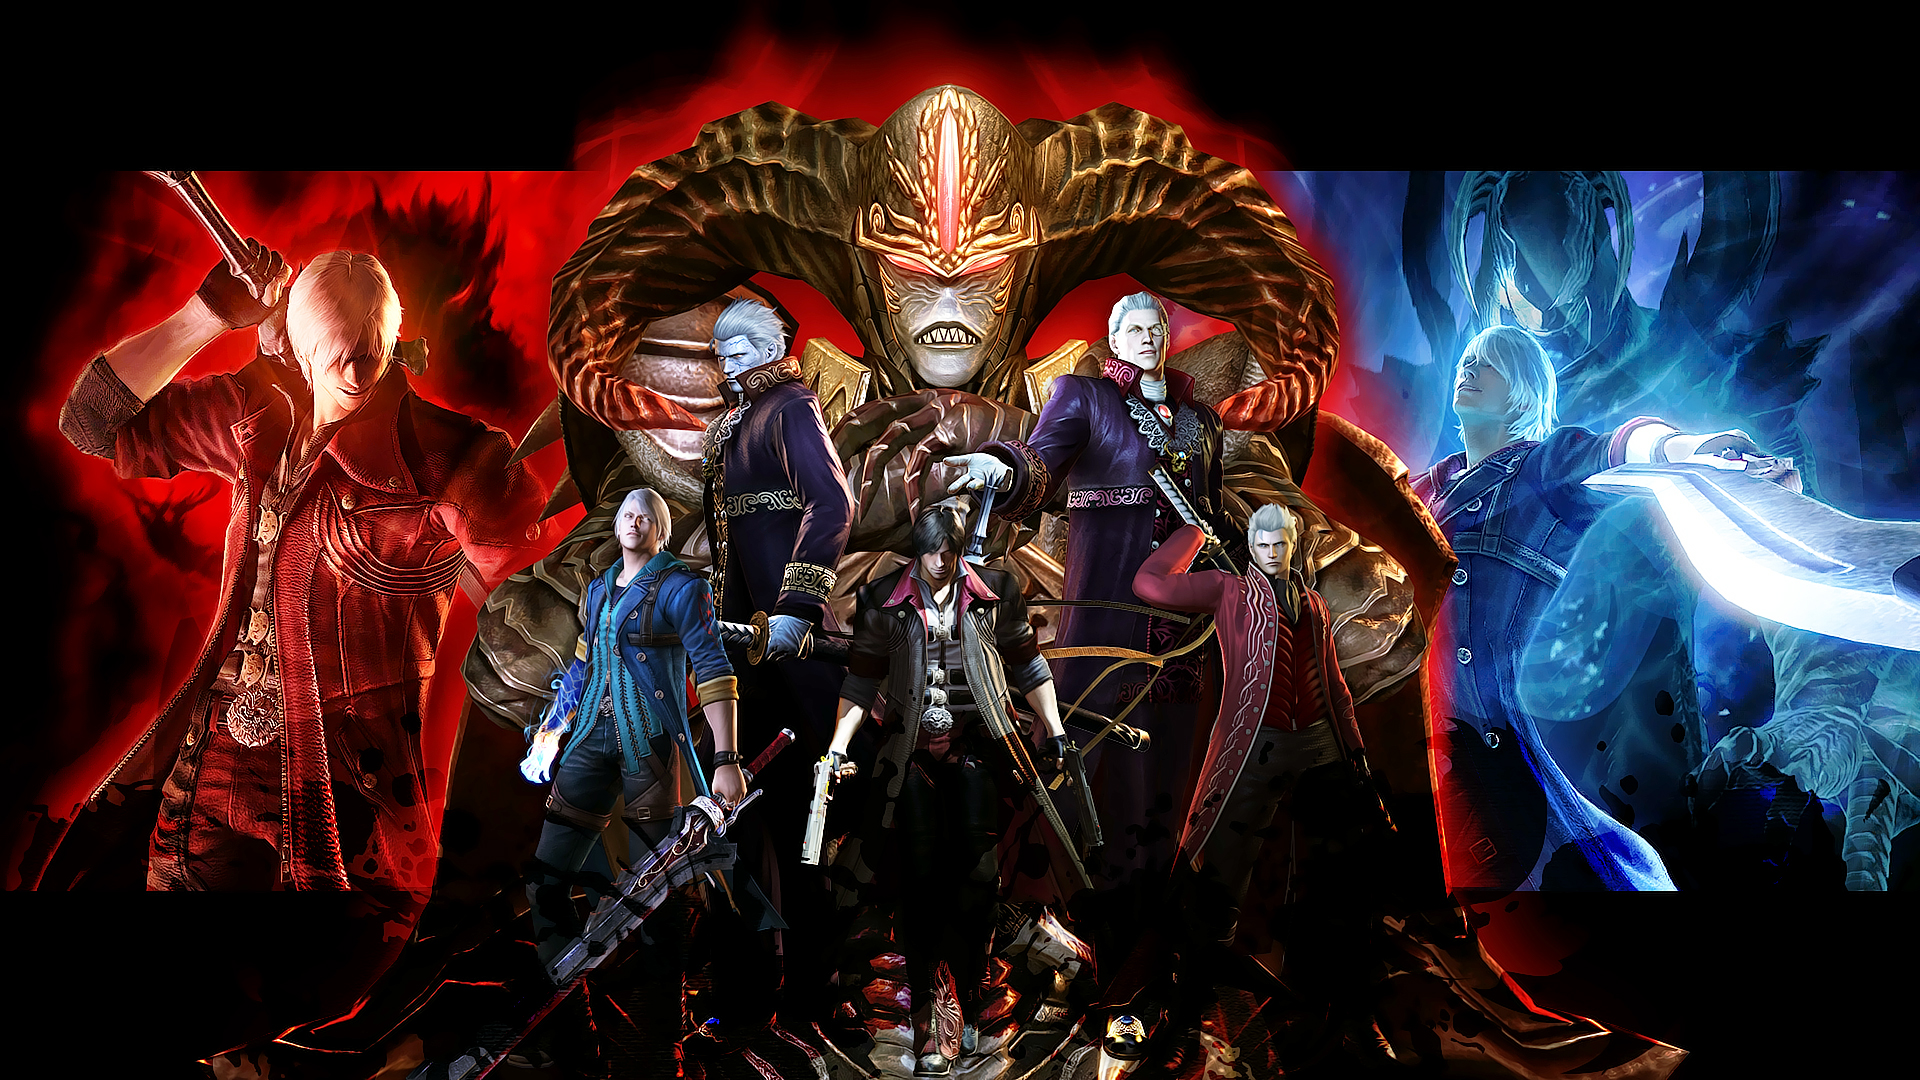 Devil May Cry 4 Special Edition by incneetX666 on DeviantArt